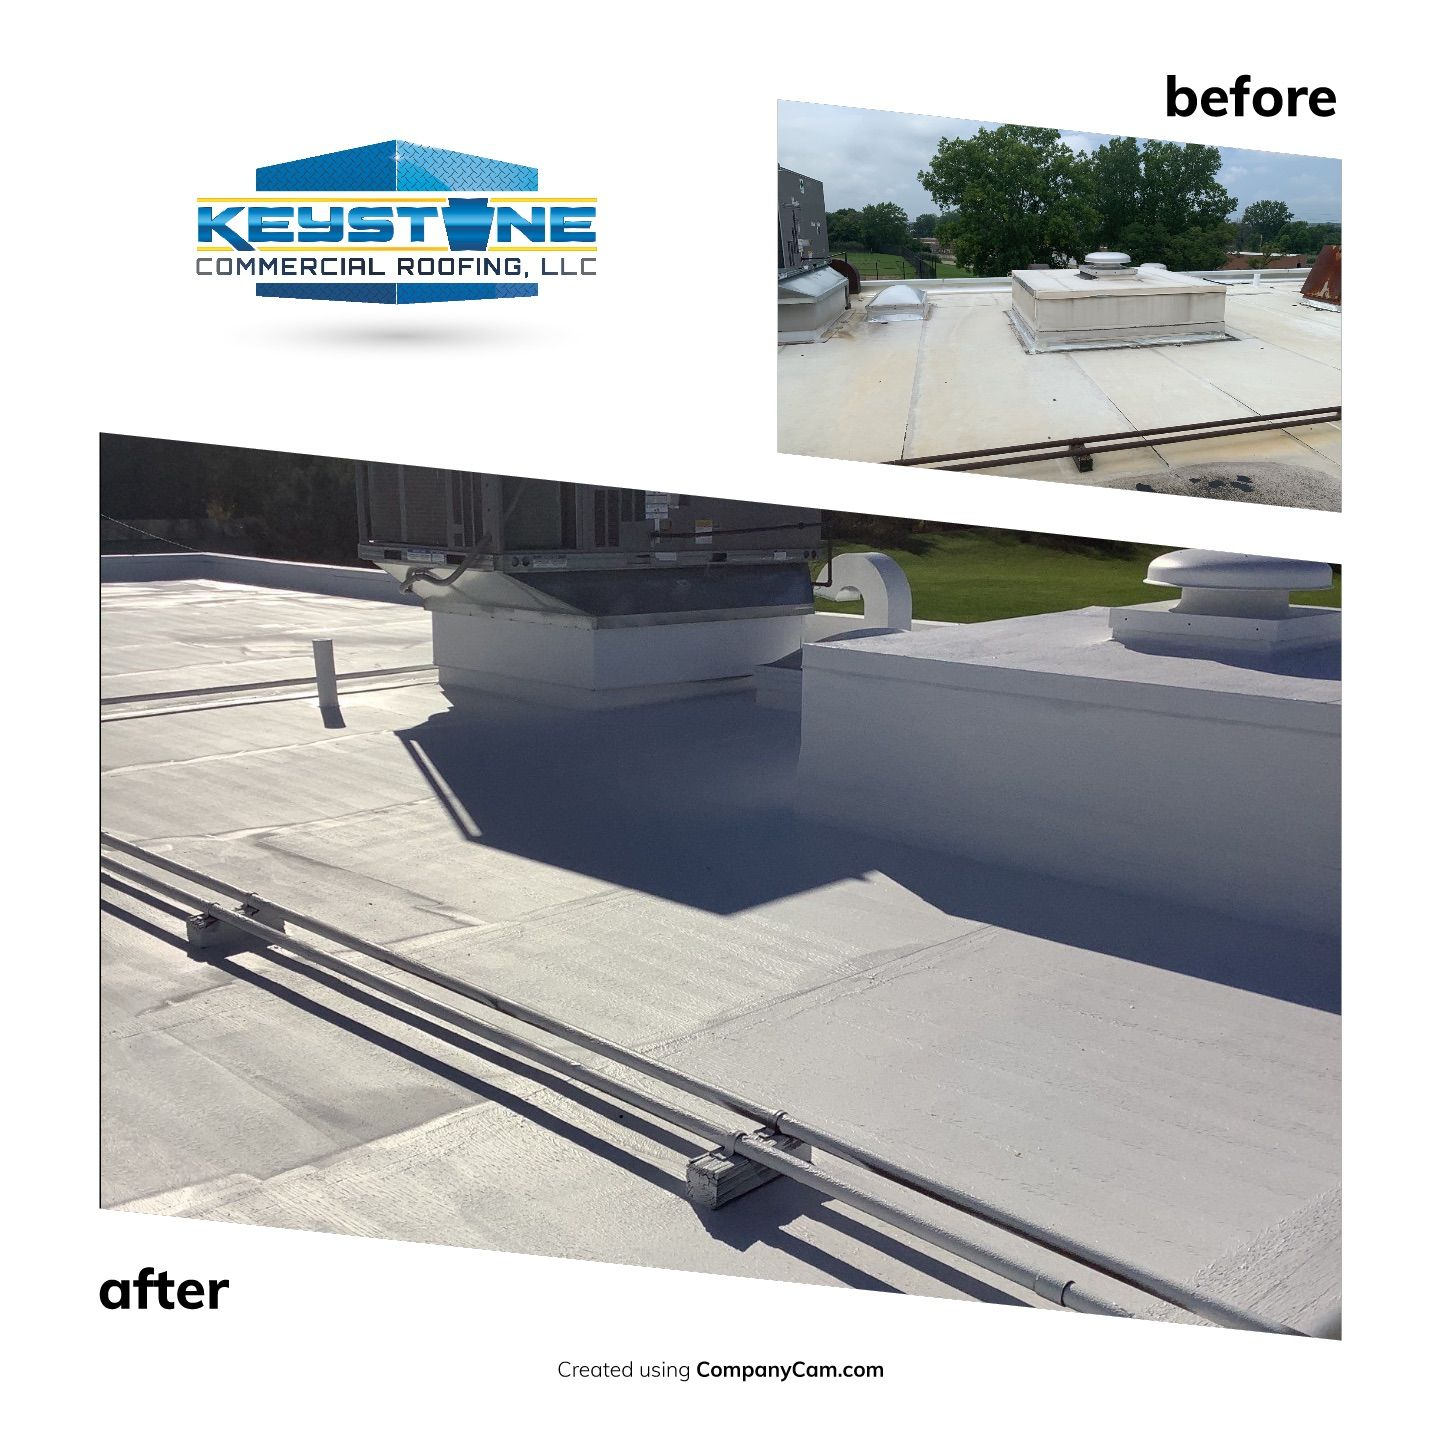 Before/After of a Membrane Restoration System with Equinox Cold Weather Acrylic Coating